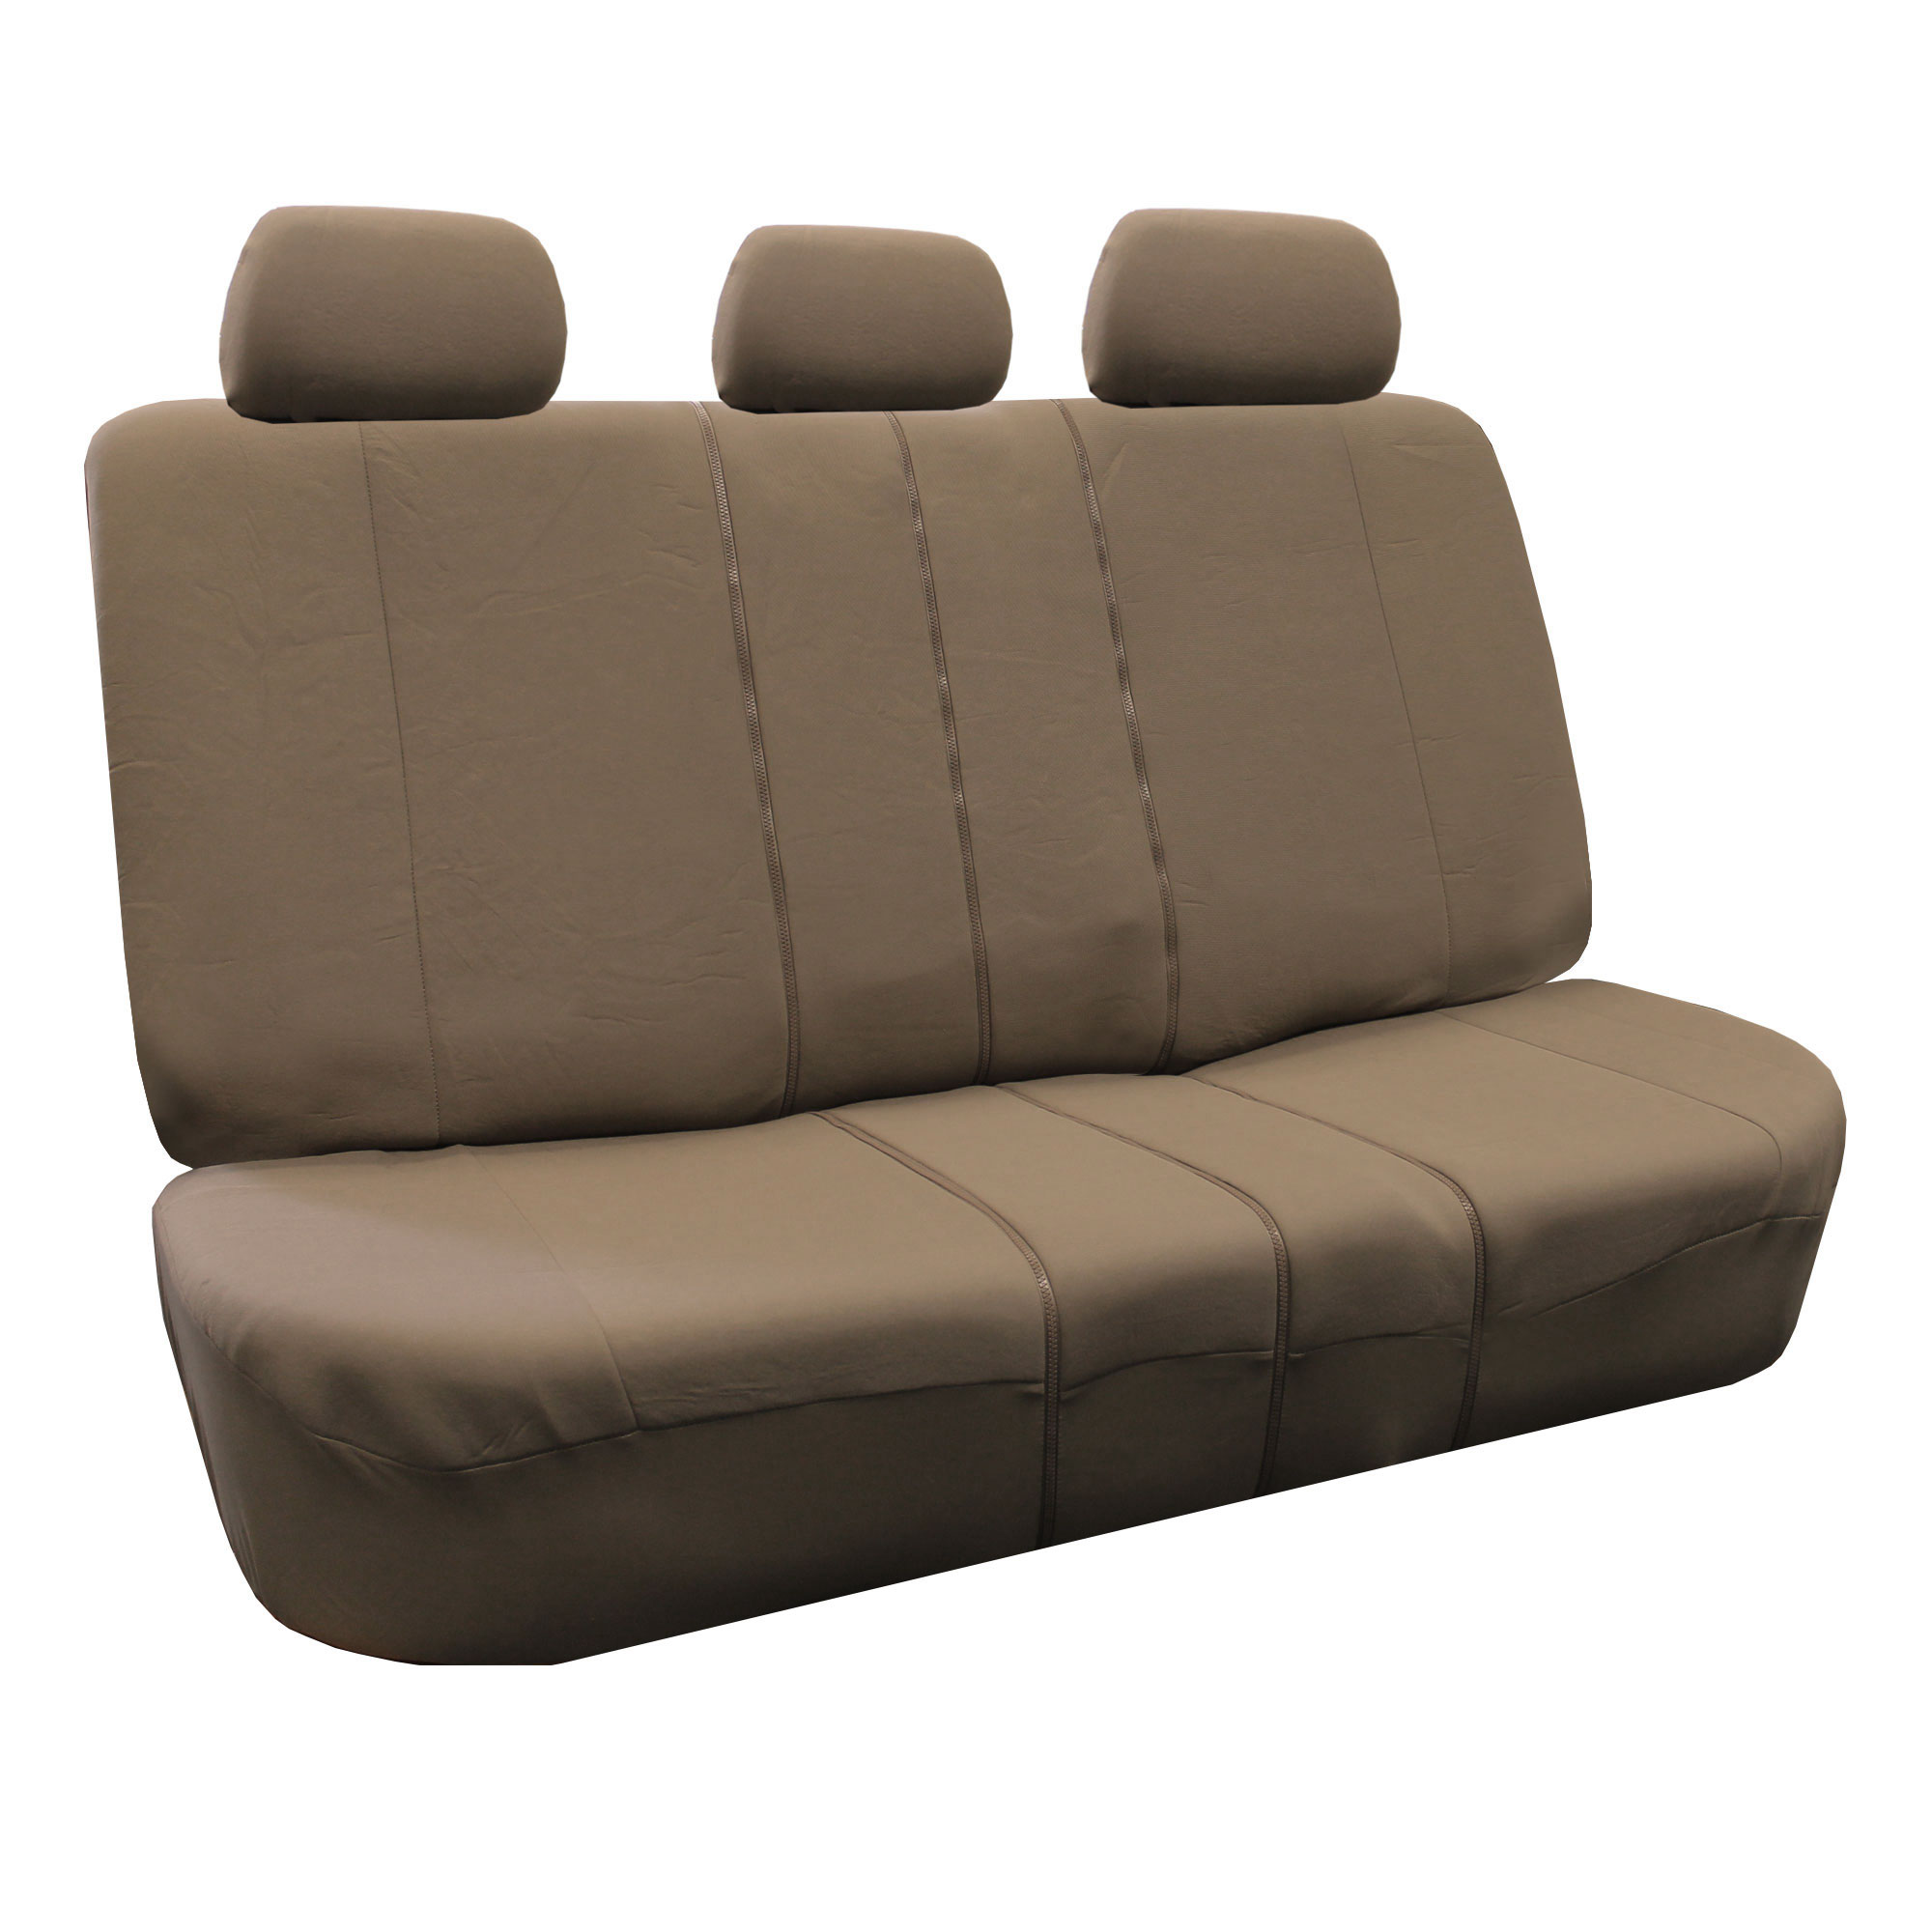 Supreme Cloth Seat Covers - Full Set FB052taupe013 2